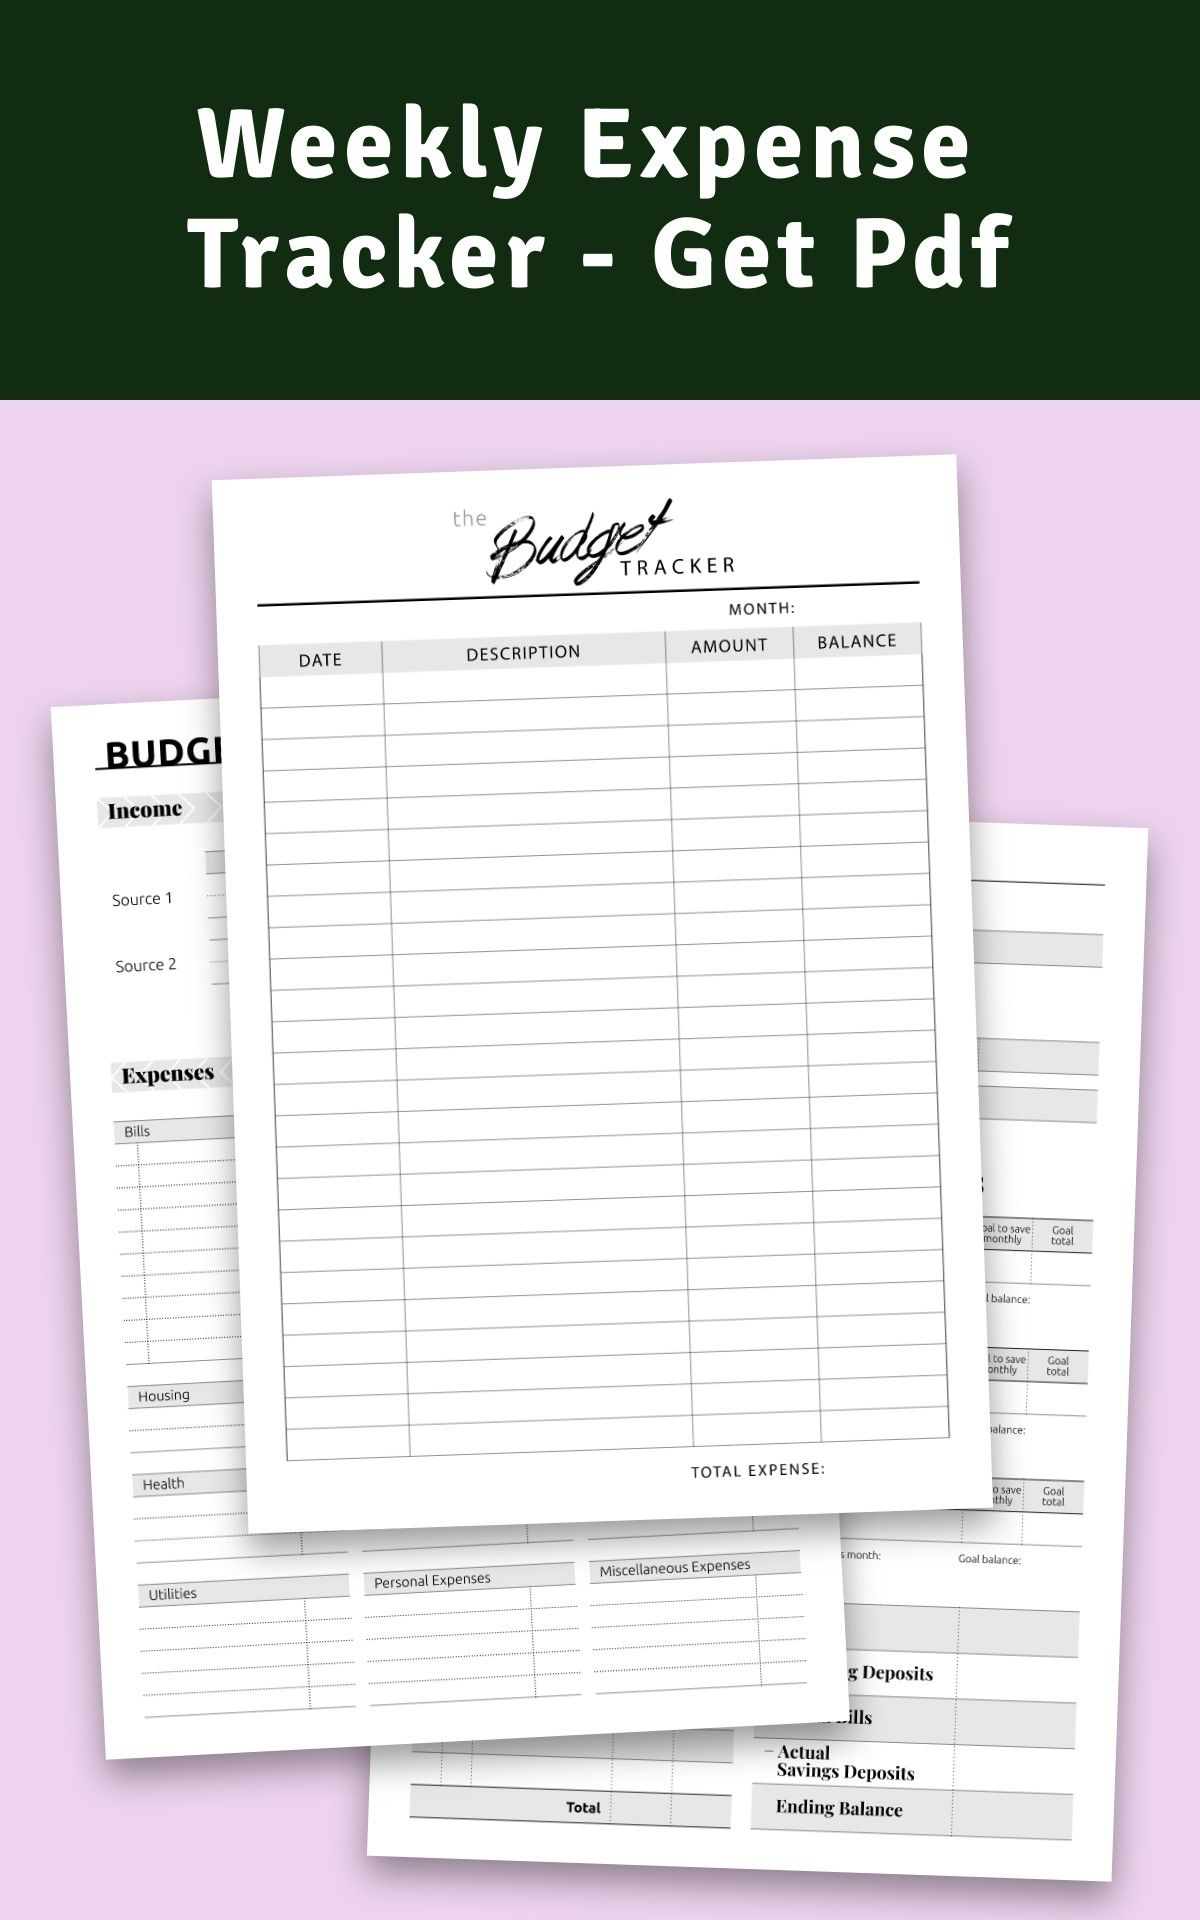 Weekly Expense Tracker Get Pdf in 2020 Budget planner